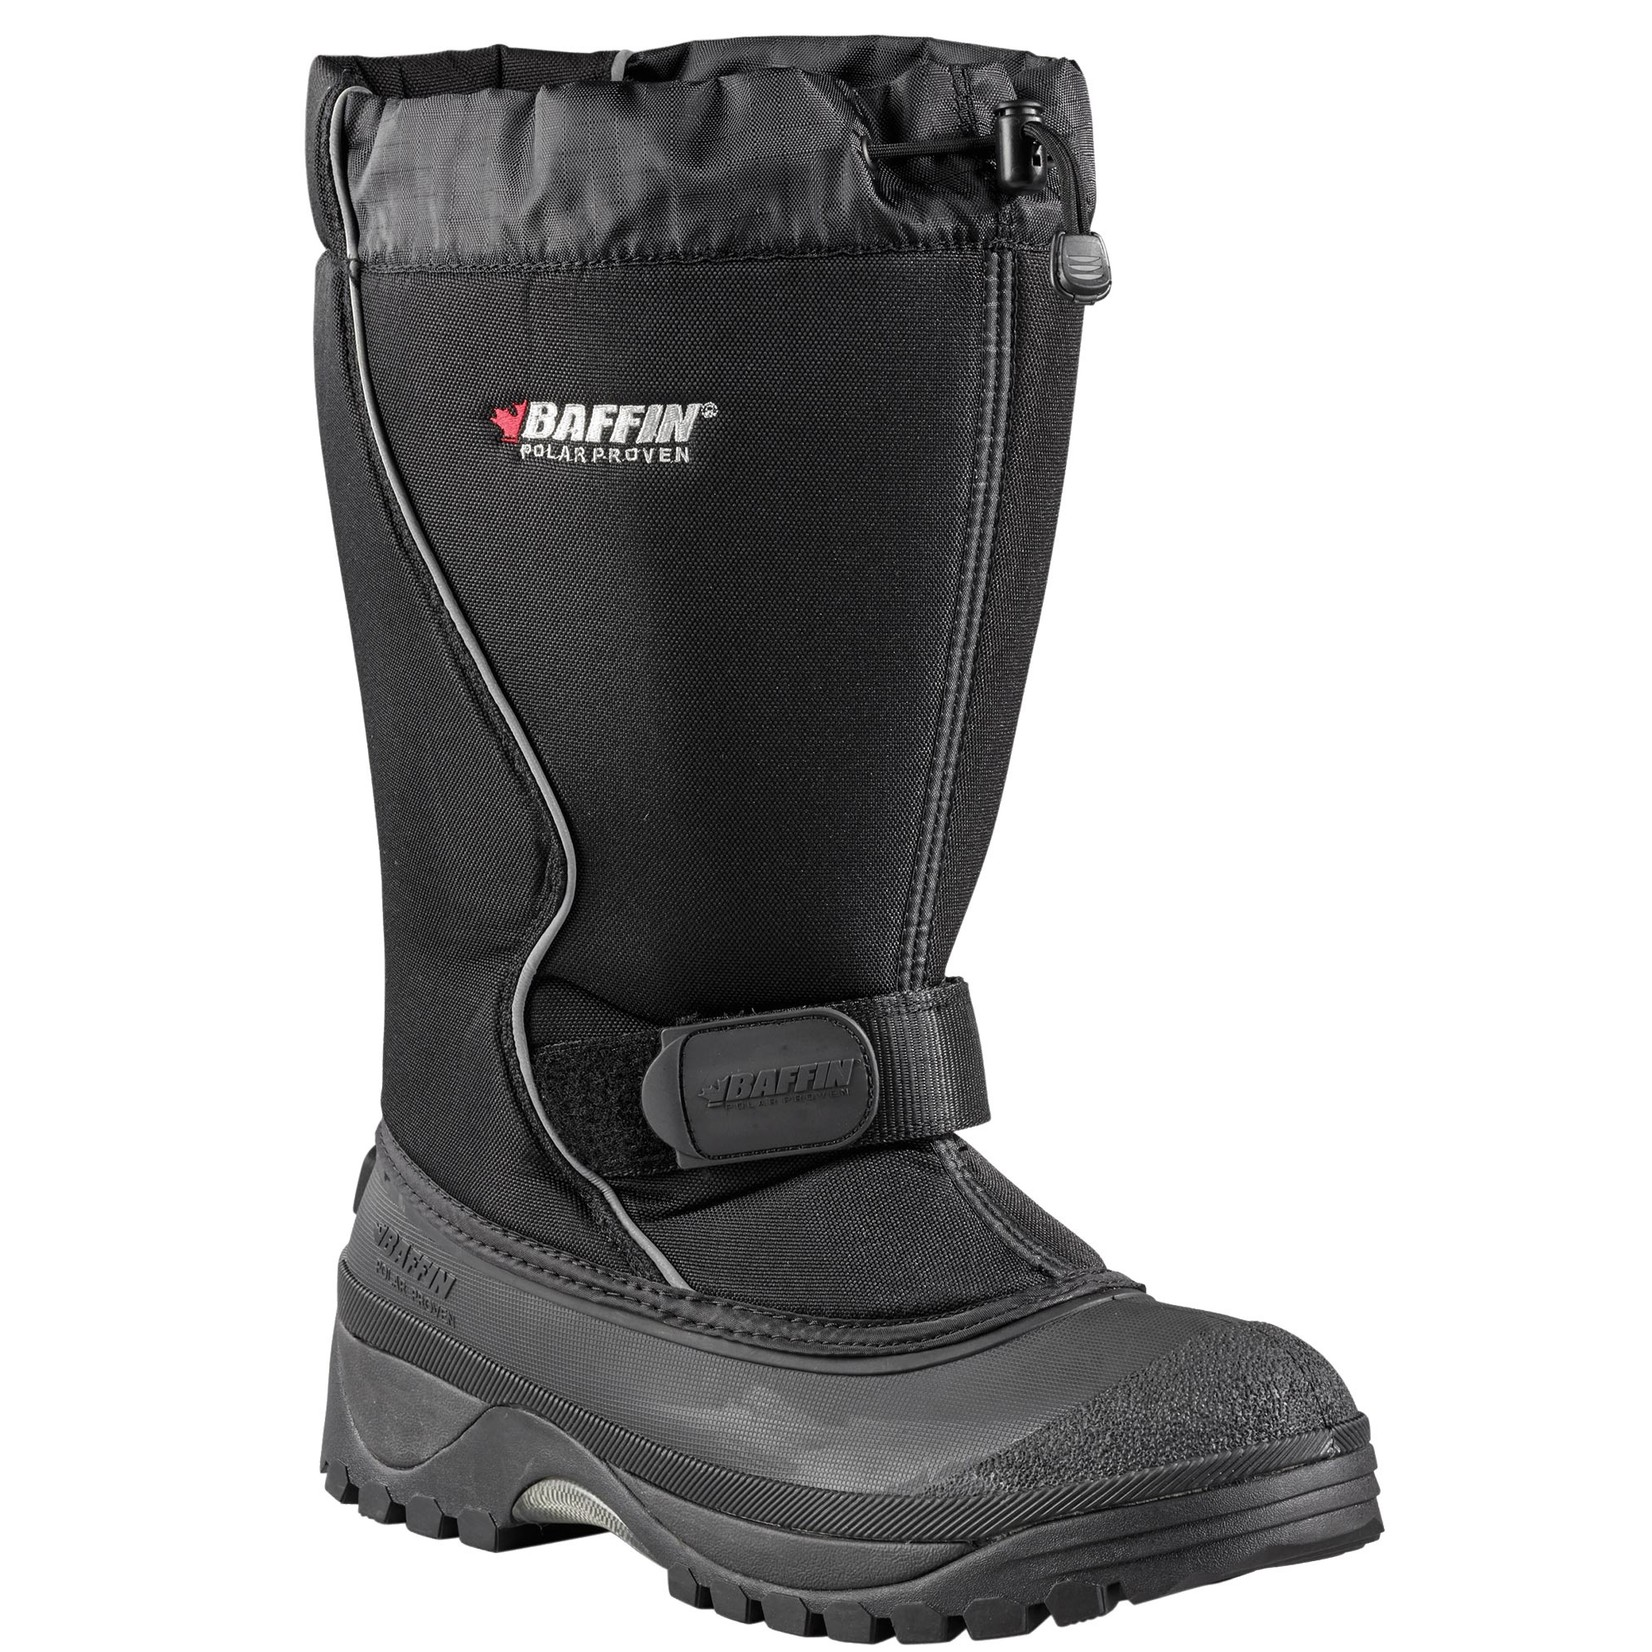 Baffin Baffin Tundra Men's Winter Boot  #4300-0162 Rated -40